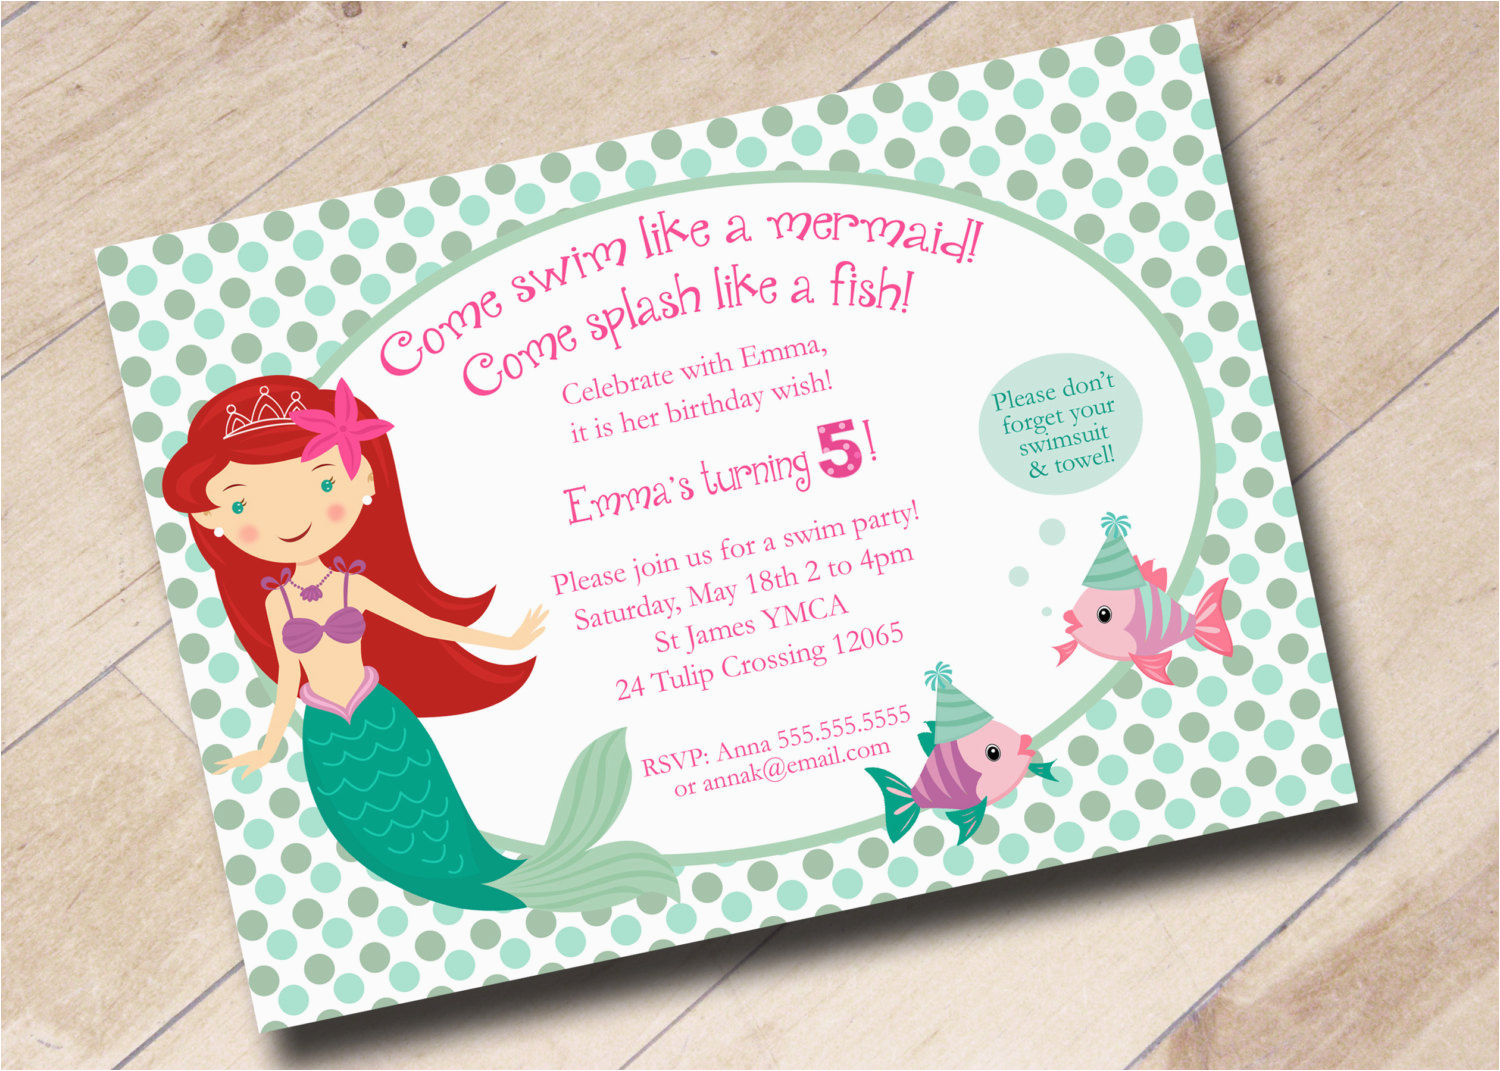 Little Mermaid Party Invitation Wording